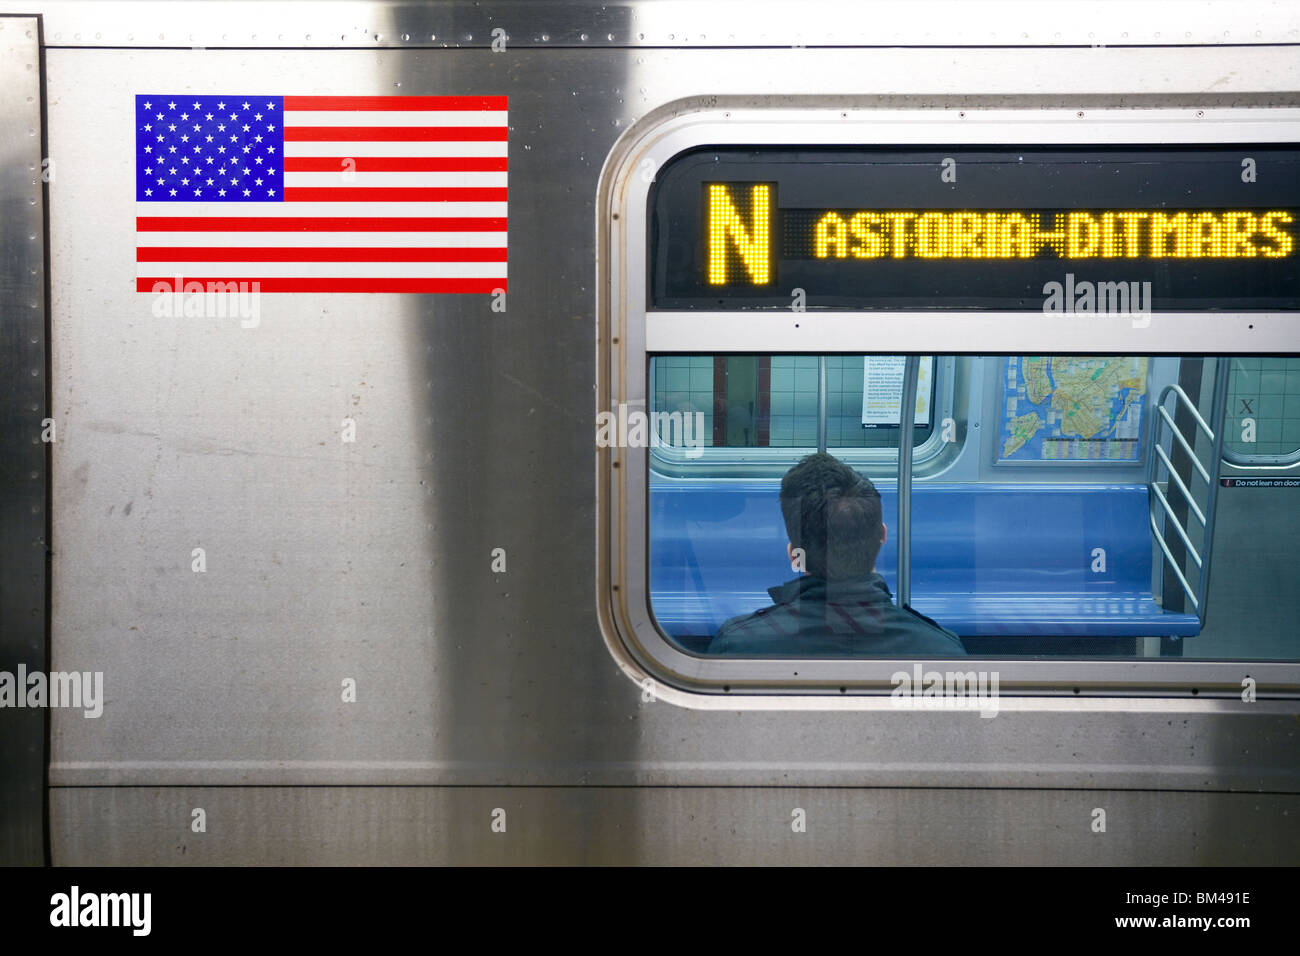 United States of America, New York, New York City, Manhattan, Subway Station and train in motion - Stock Image